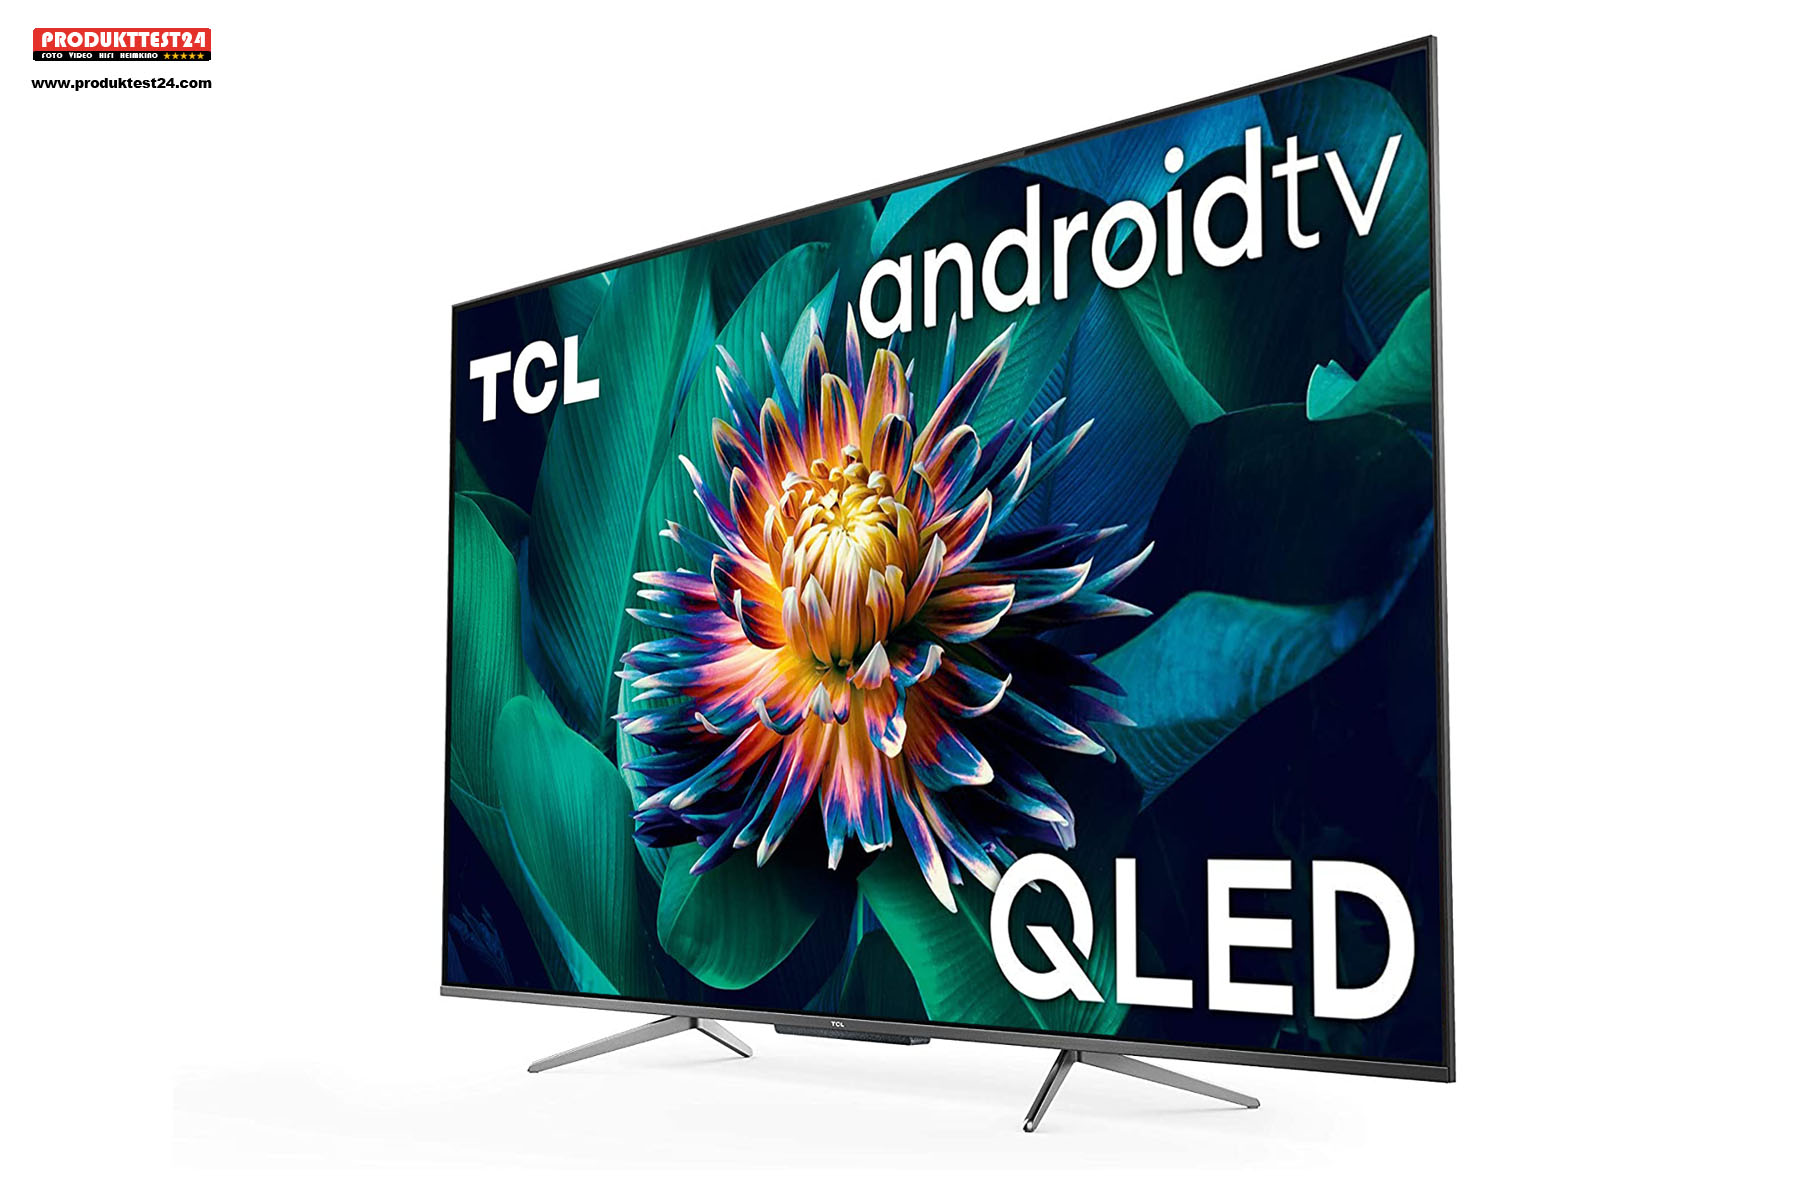 TCL 50C715 QLED 4K-Fernseher mit Android 9 SmartTV